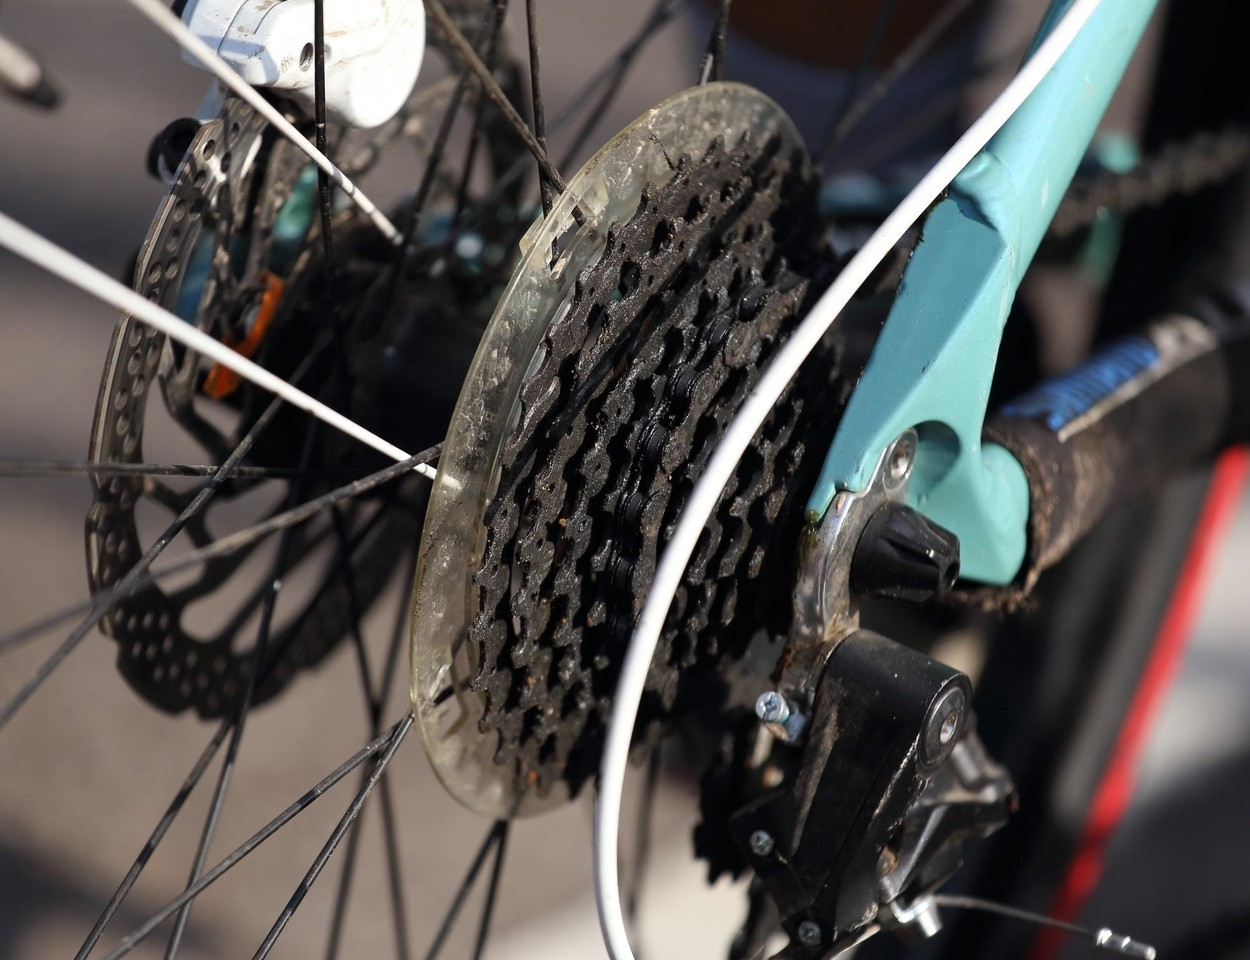 Ultimately, choosing which drivetrain to select for your bike is a personal choice. Electronic shift systems as Shimano Di2, Campagnolo EST, or SRAM are definitely more expensive, but the benefits are pretty clear.